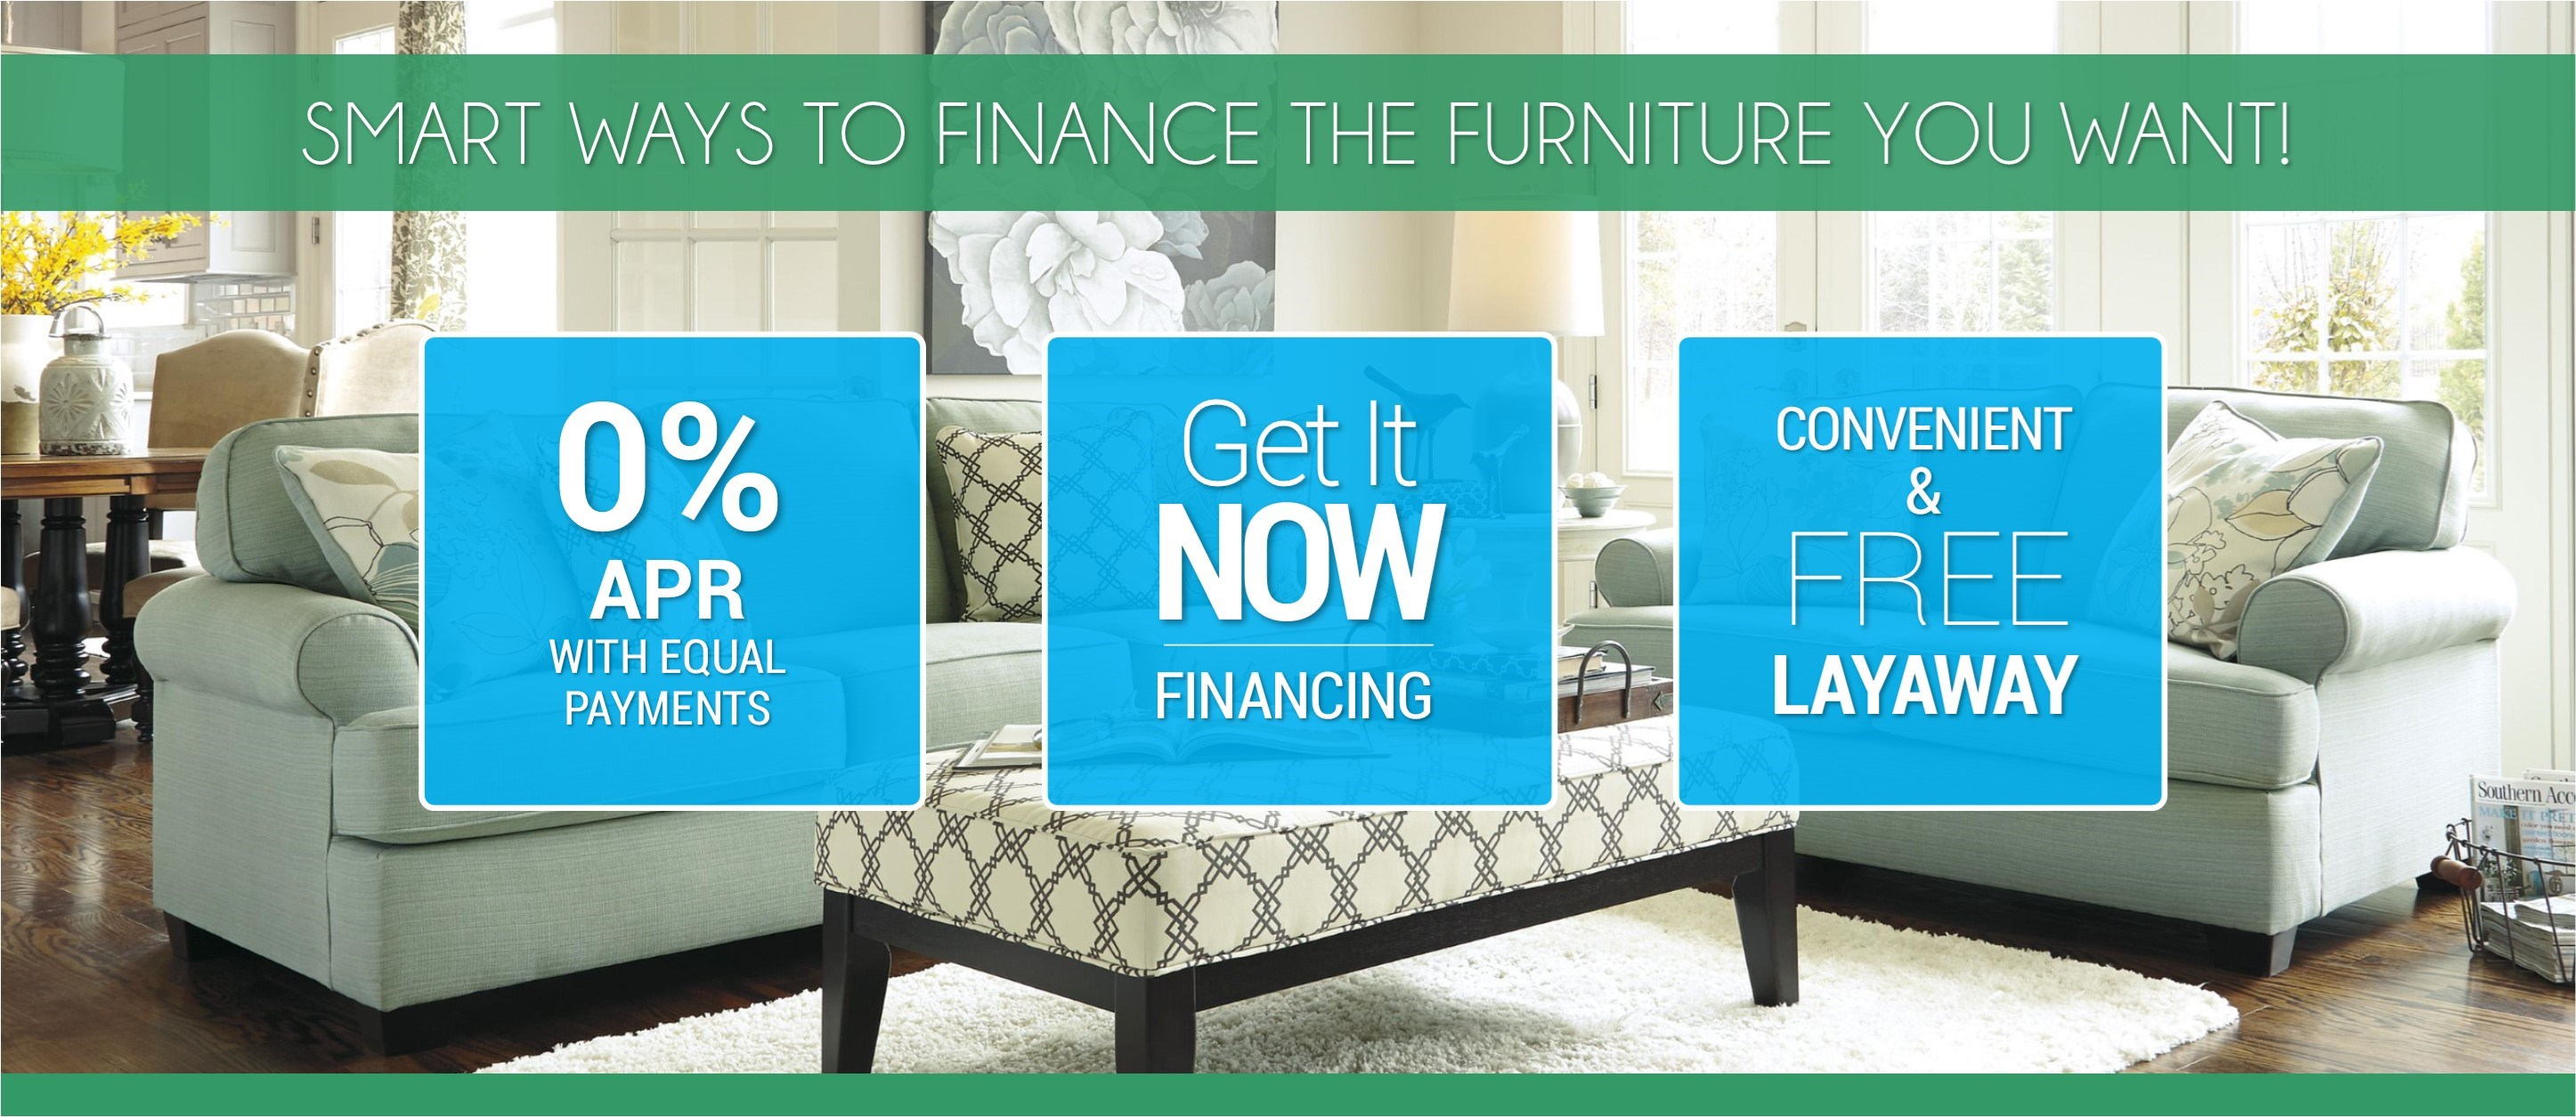 at major shop financing storewide mattress clearance and large furniture kloss